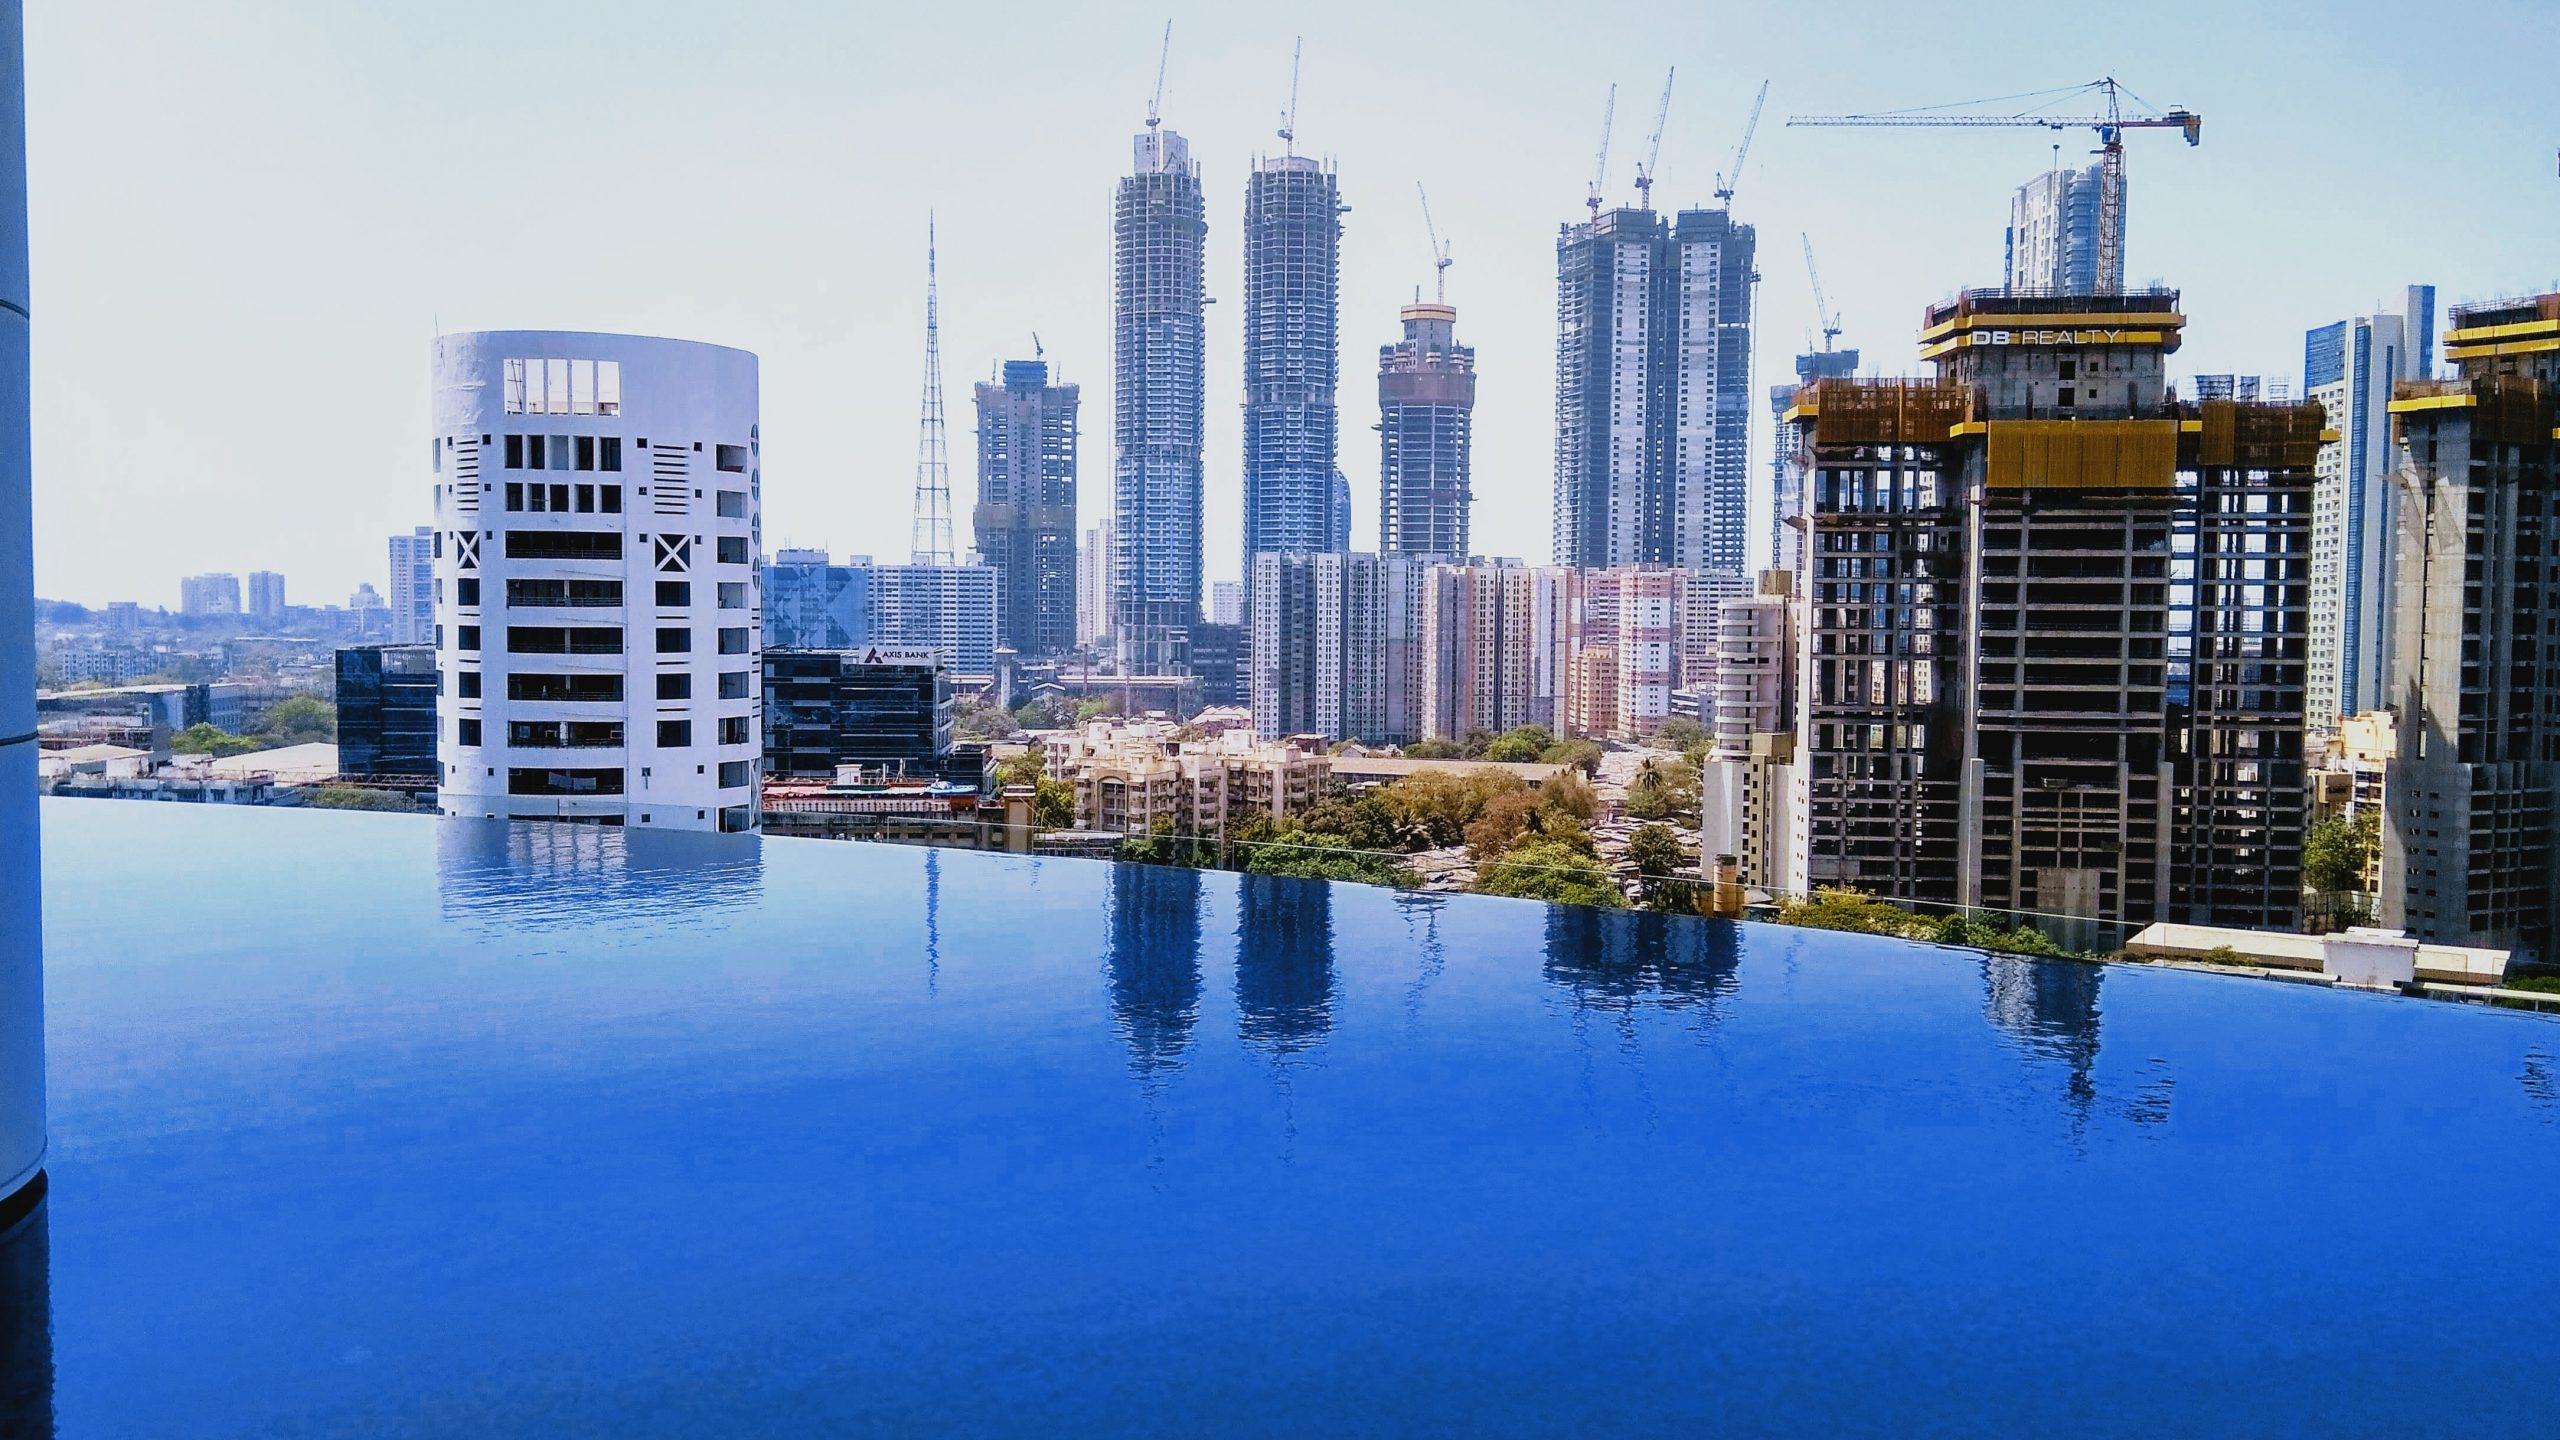 Buildings and blue water